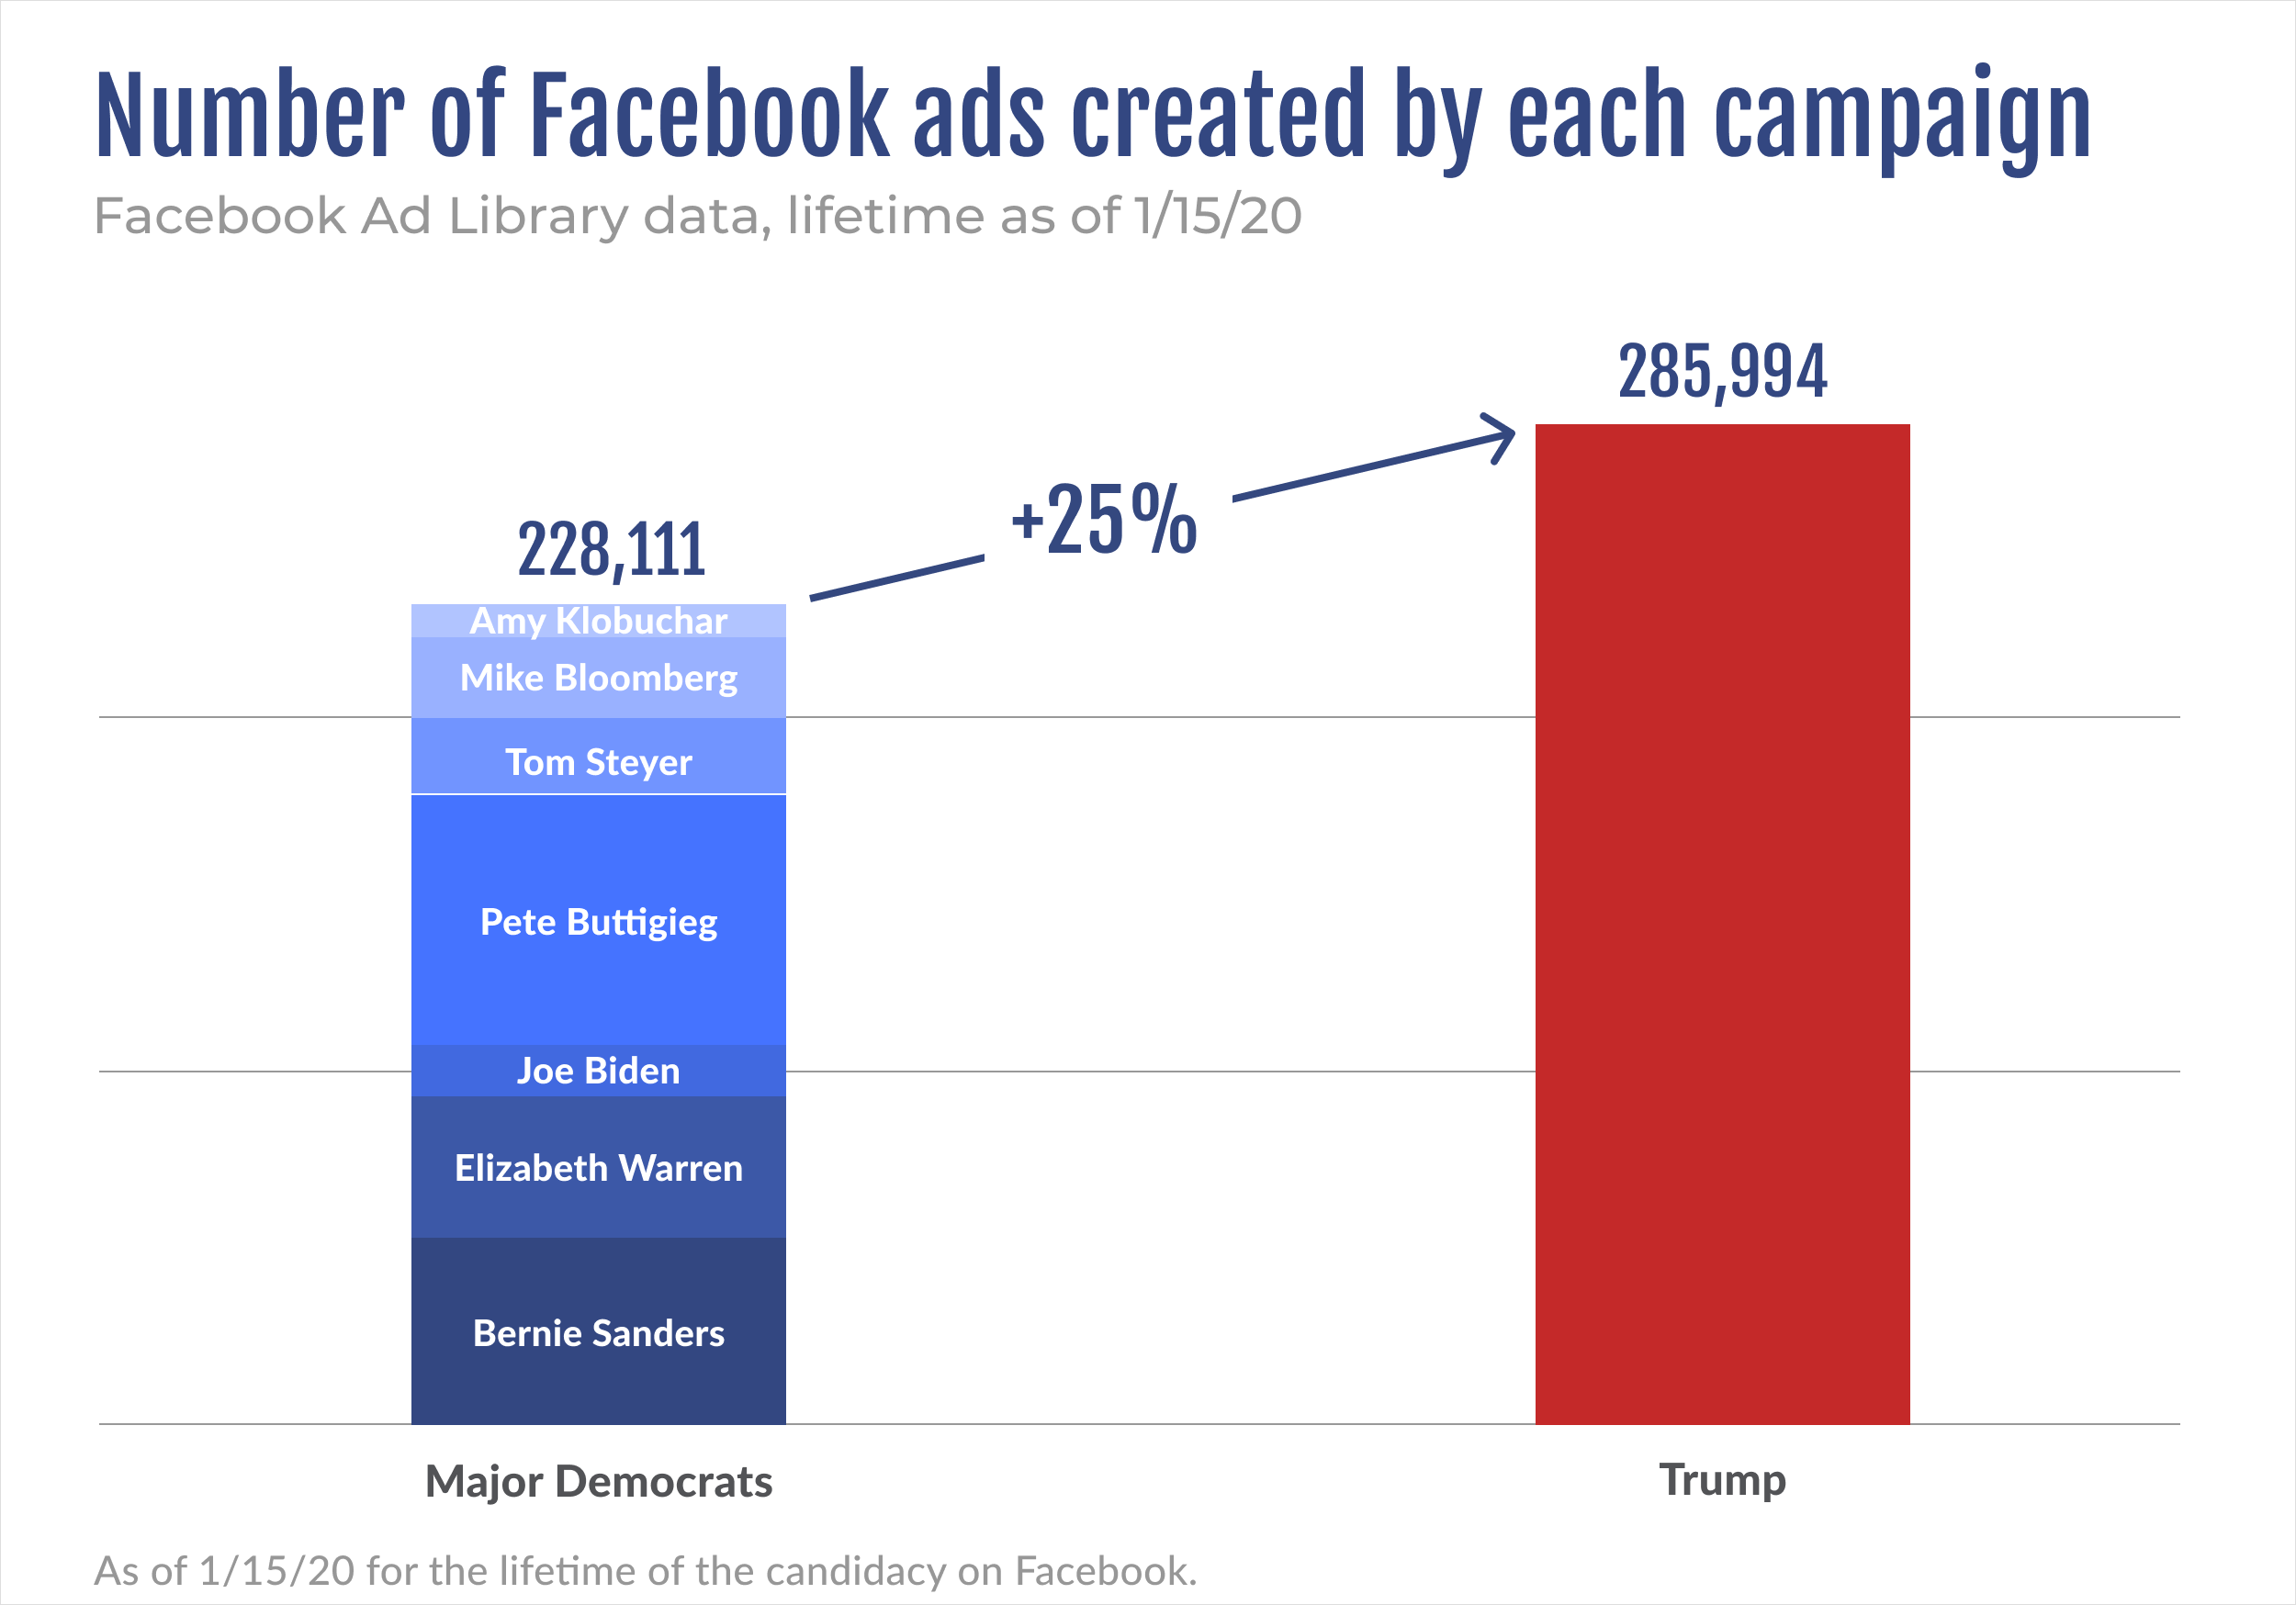 Number of Facebook ads created by Democrat and Republican campaigns as of 1/15/20